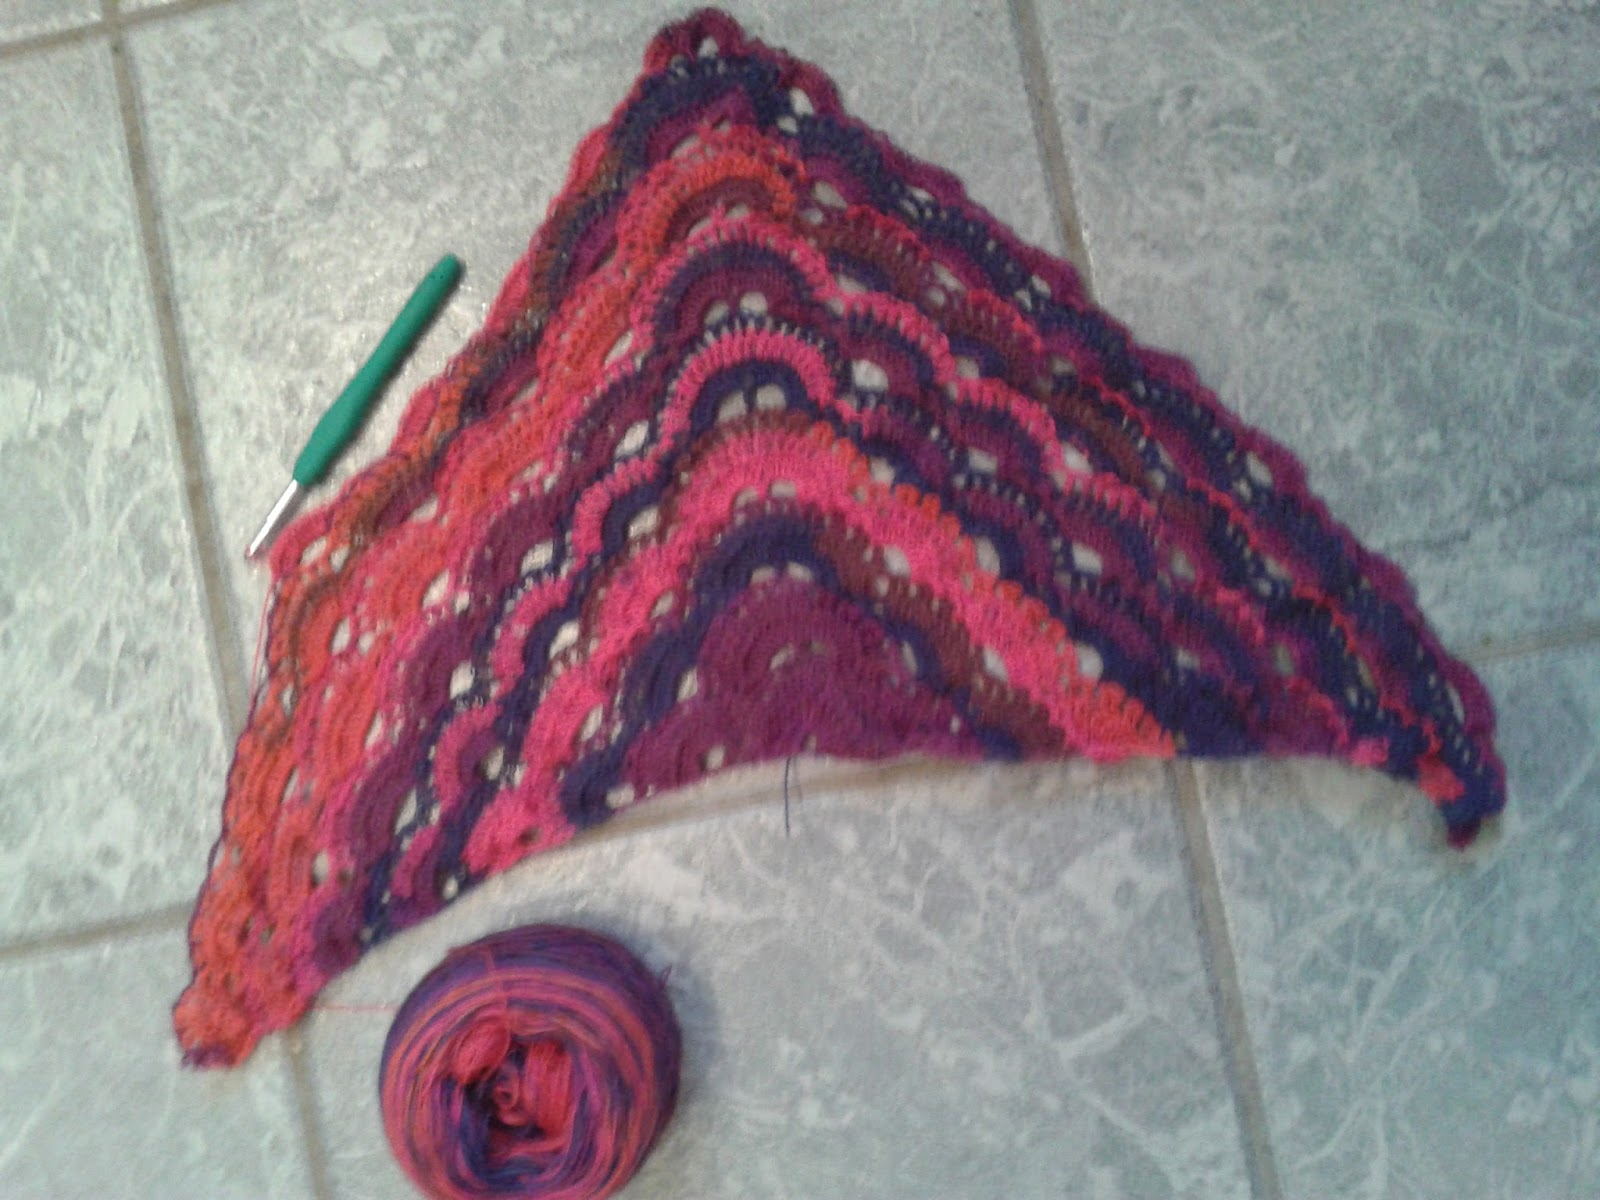 Crochet Pattern Virus Shawl : funkycrochet: Crochet Shawls : Fortunes Shawlette, Virus Shawl and a ...